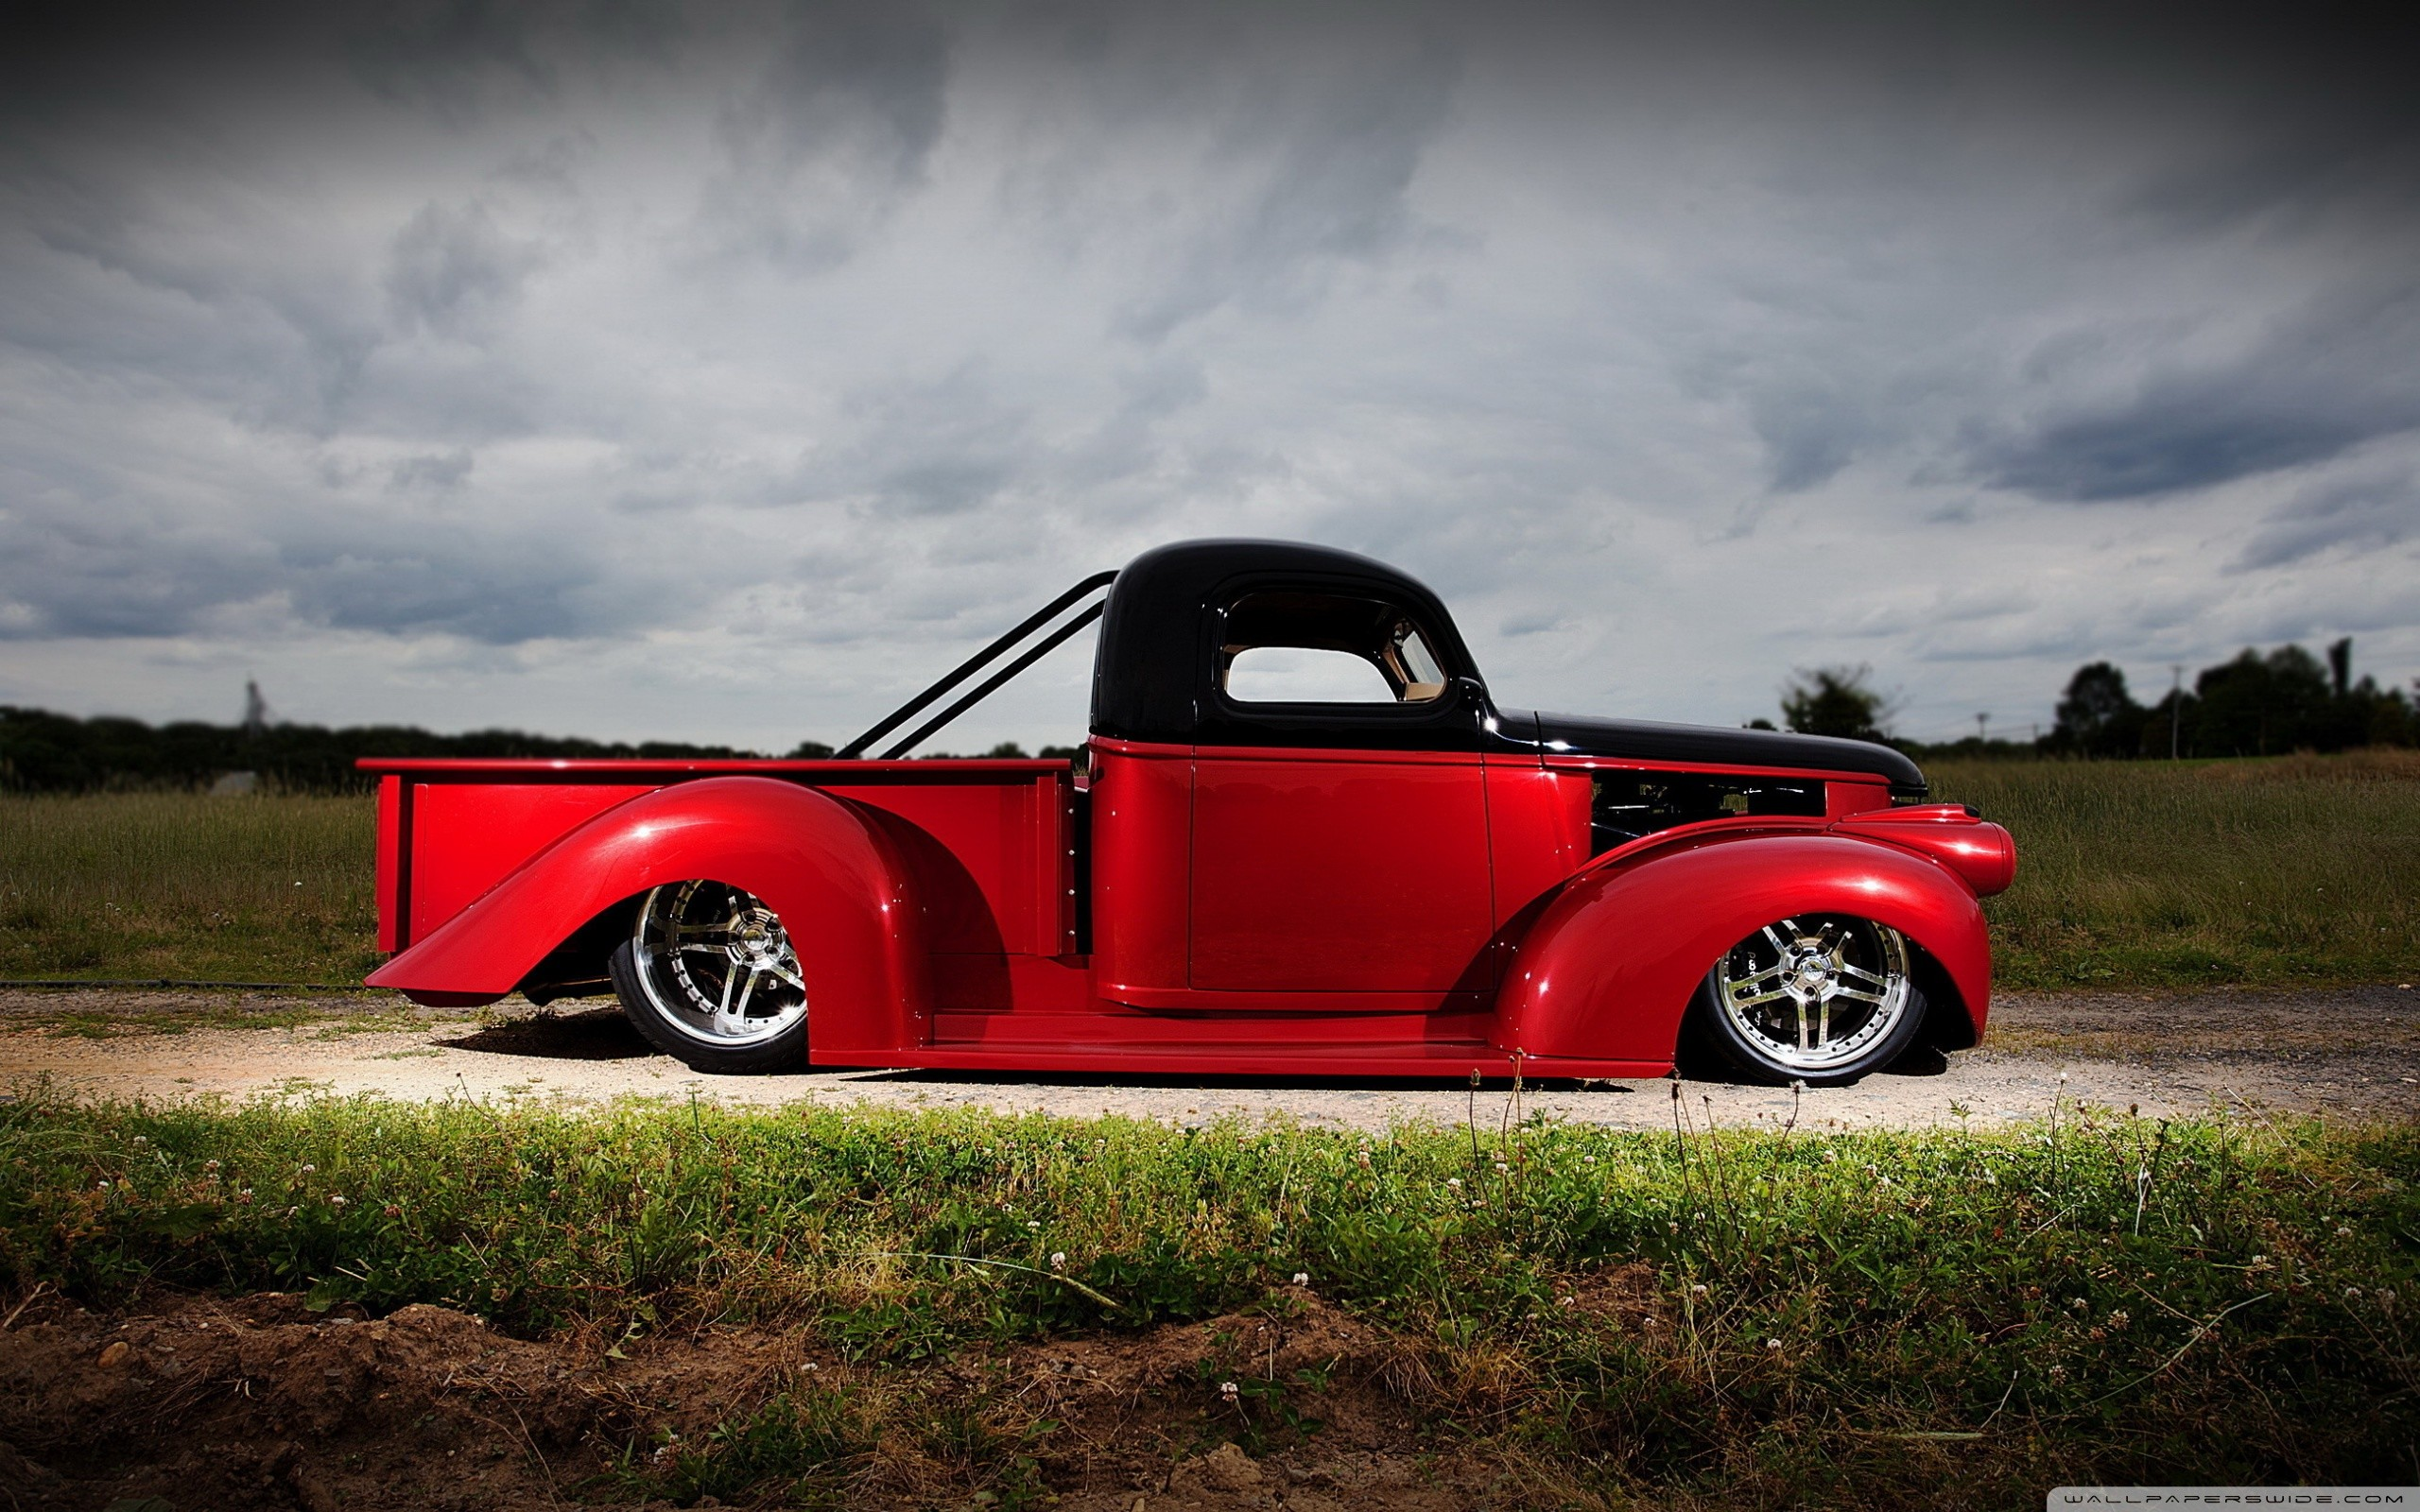 Wide   Data Src Cool Hot Rod Wallpapers For Iphone - Chevrolet C10 Hot Rod - HD Wallpaper